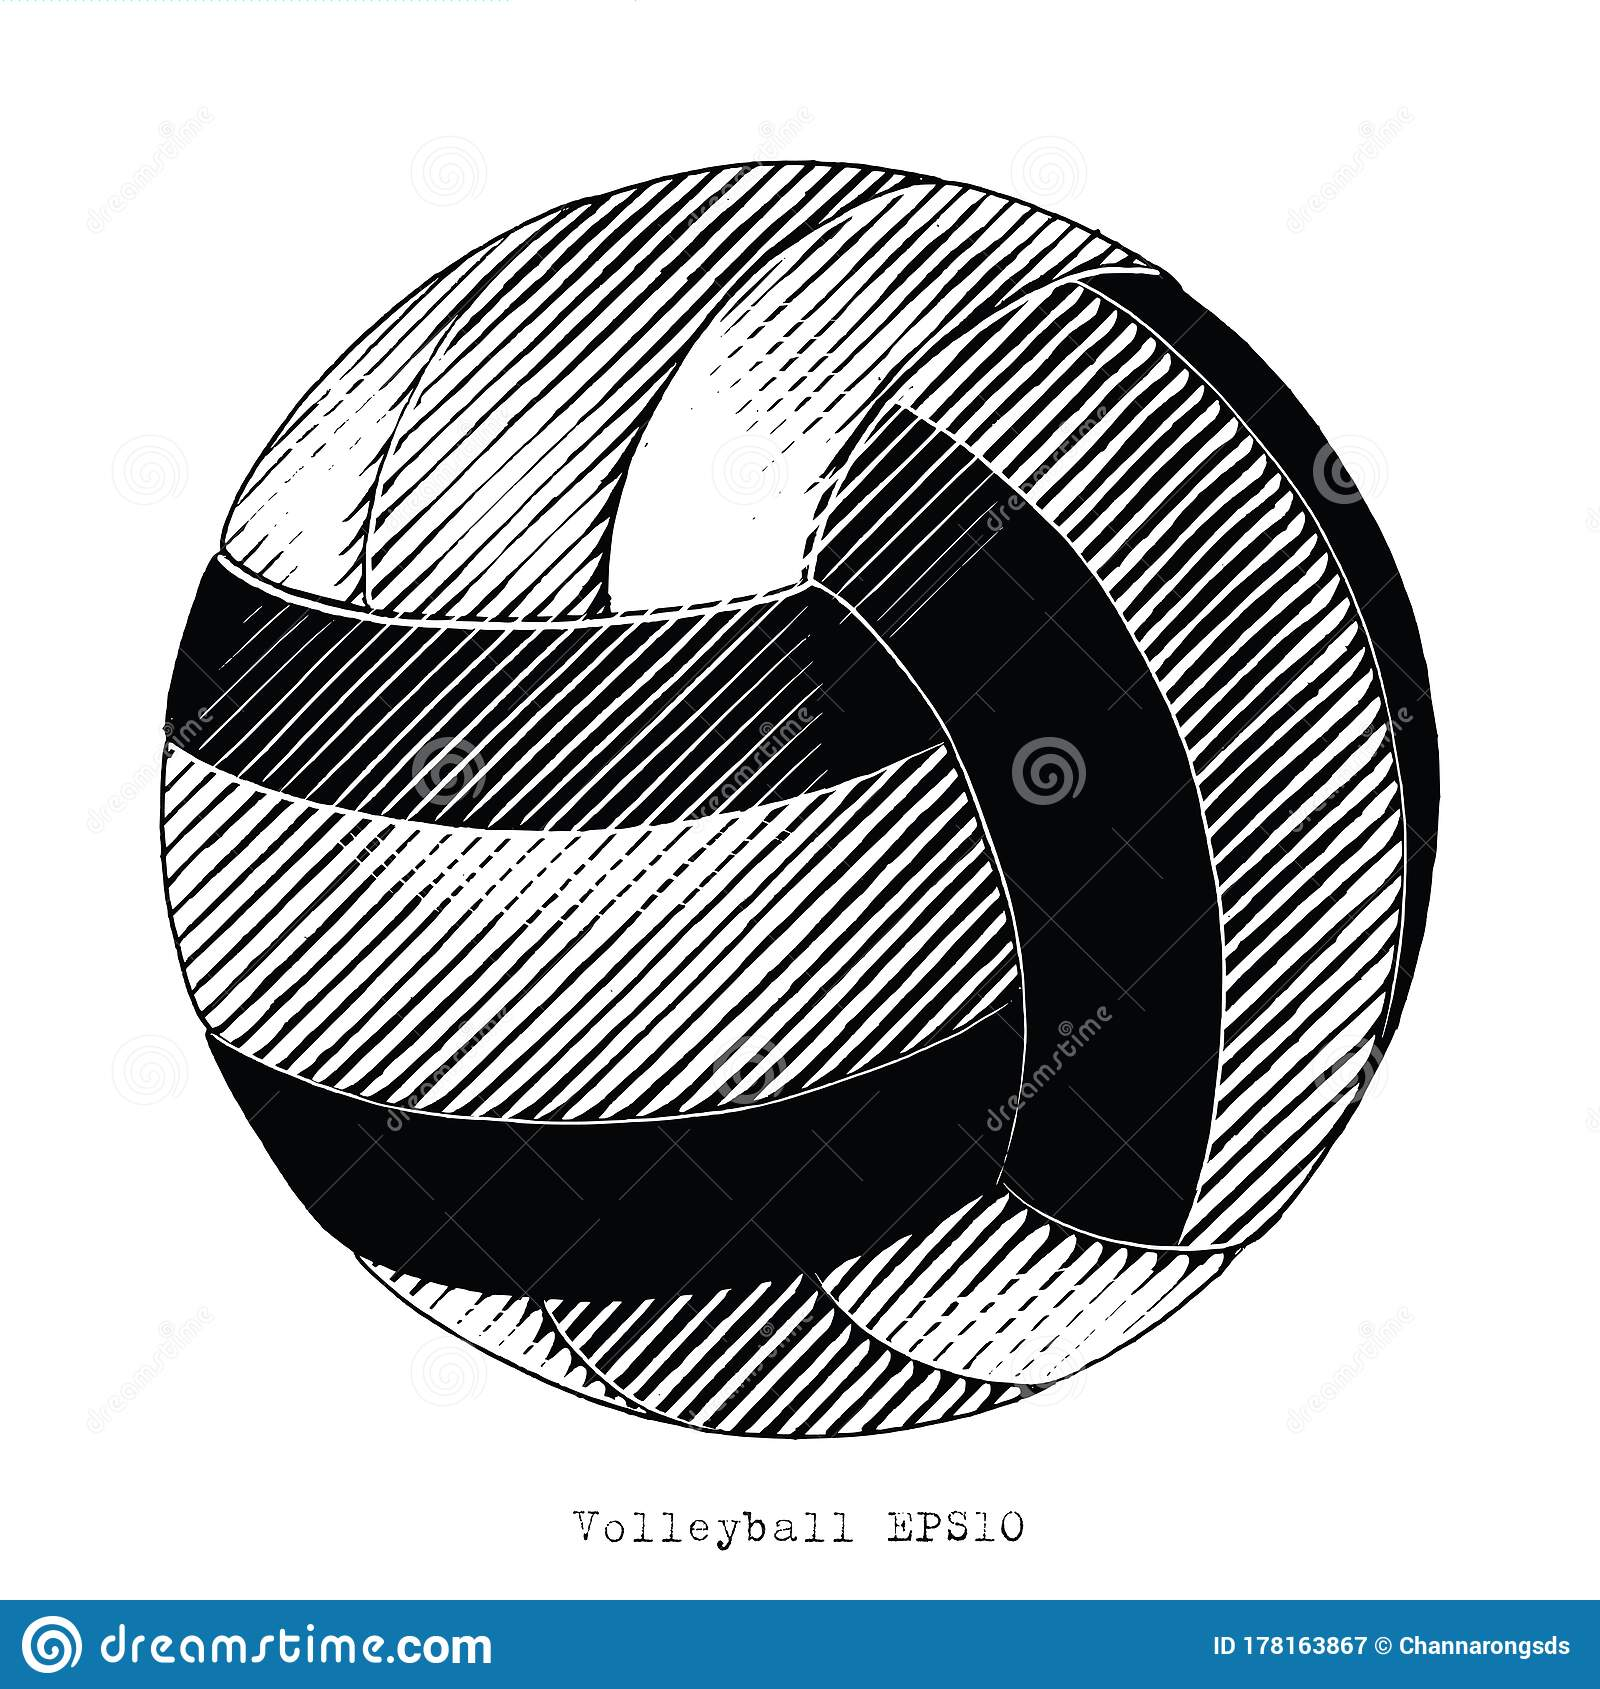 Volleyball Clip Art Stock Illustrations 1 007 Volleyball Clip Art Stock Illustrations Vectors Clipart Dreamstime